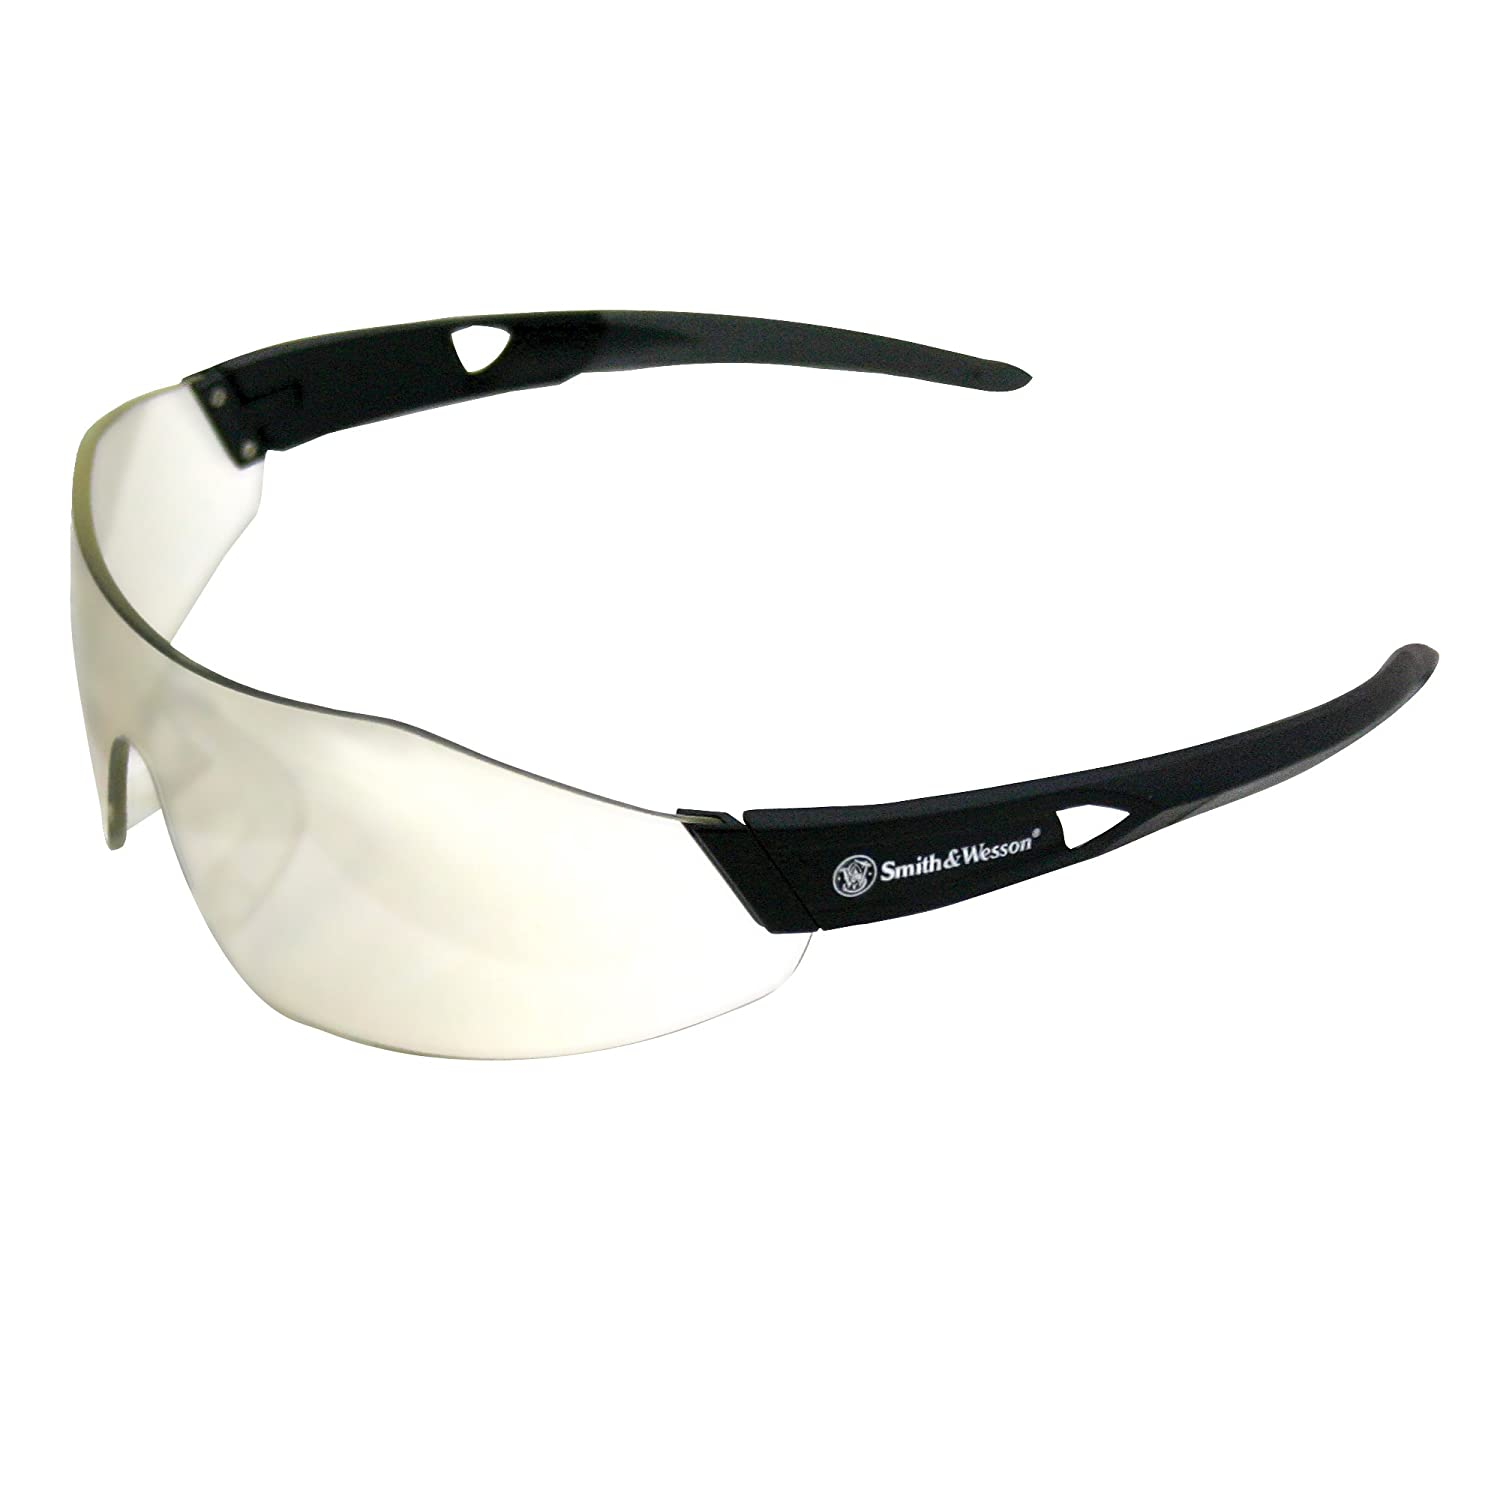 Smith & Wesson 23454 44 Magnum Safety Glasses, Indoor/Outdoor Anti-Fog Lenses with Black Frame by Jackson Safety B008D81MLC